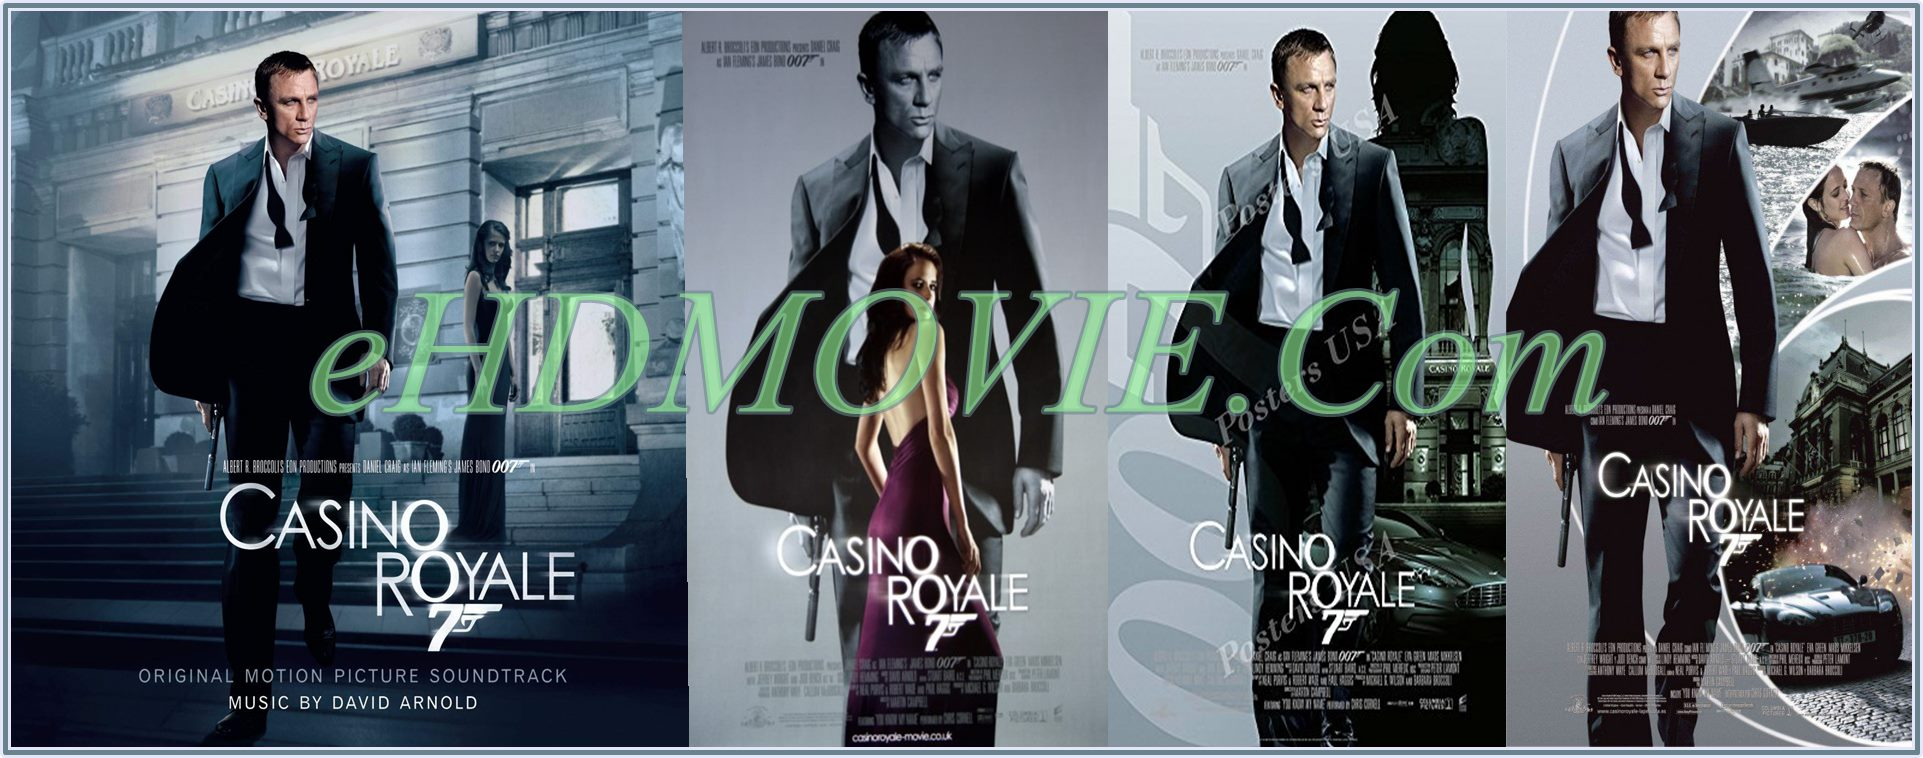 Casino Royale 2006 Full Movie Dual Audio [Hindi – English] 720p - 480p ORG BRRip 450MB - 1.1GB ESubs Free Download